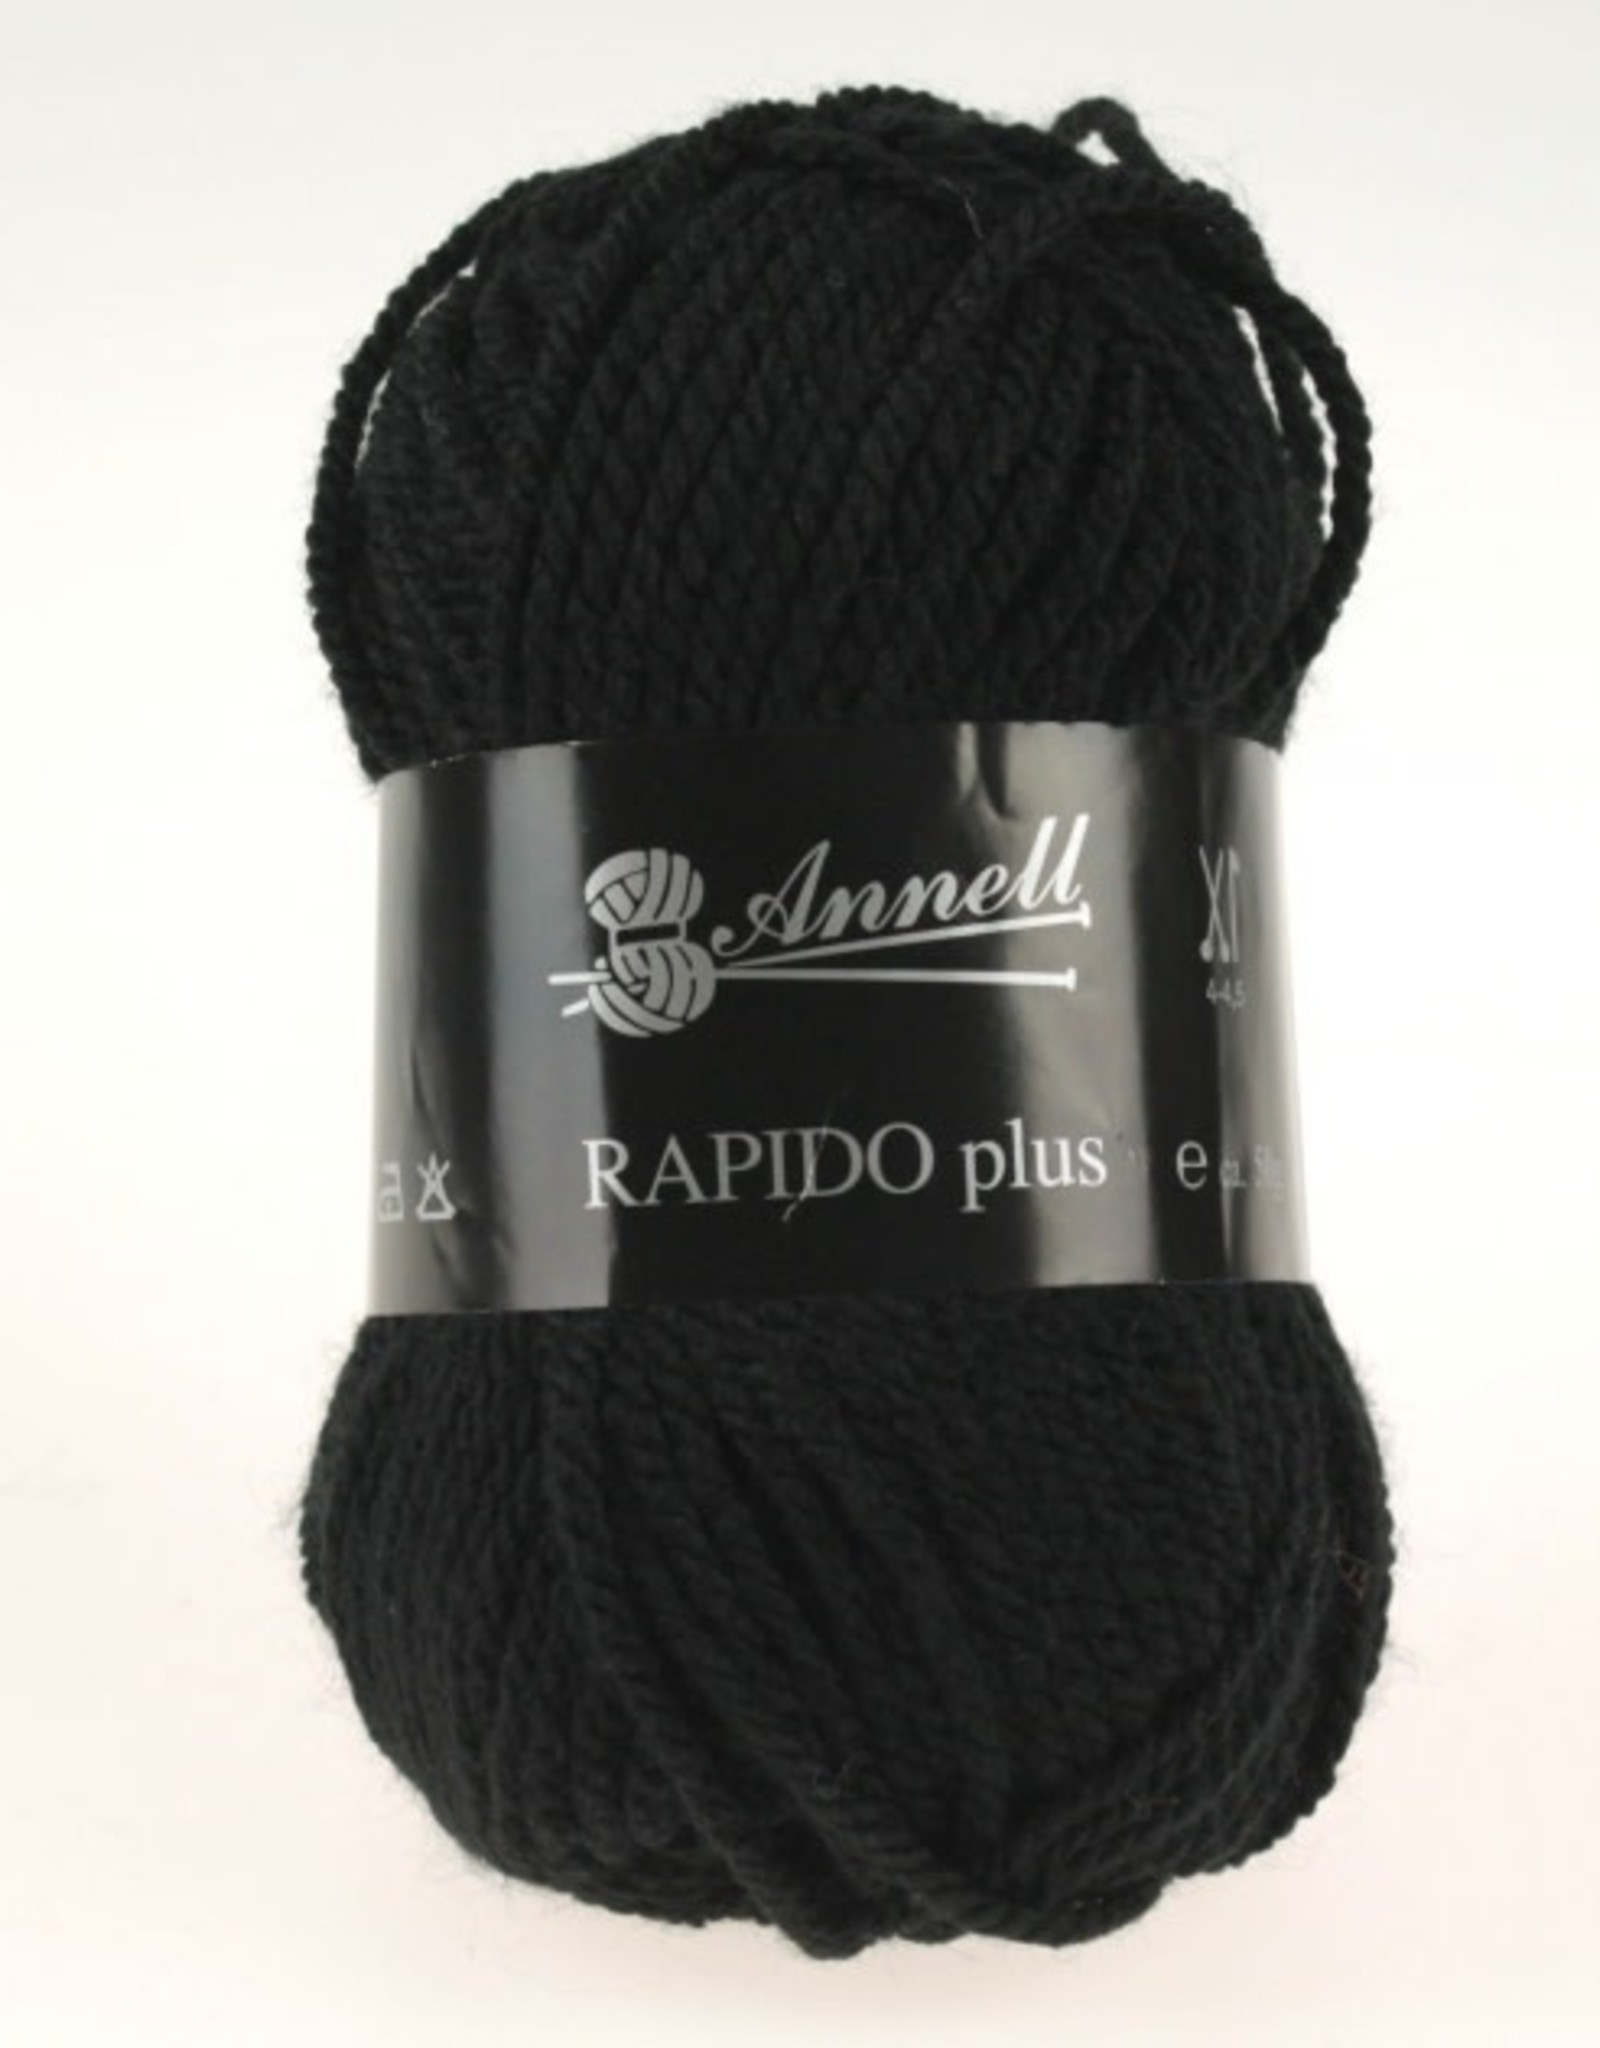 Annell Annell rapido plus 9259